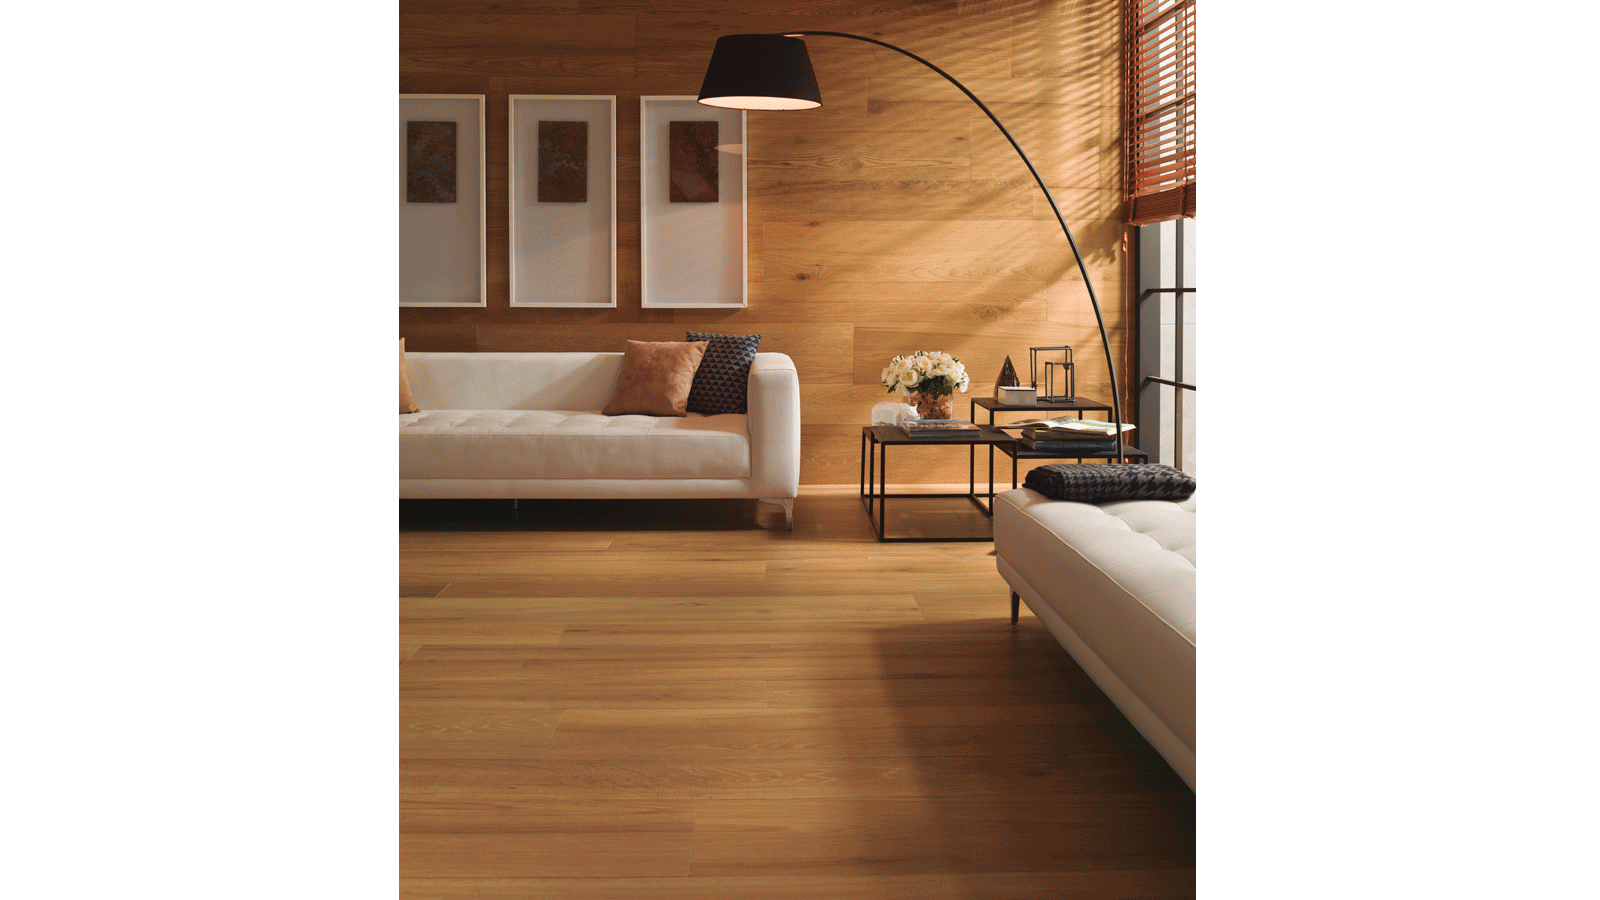 Porcelanosa joins the sobriety of wood and Premium ceramic with Nobu